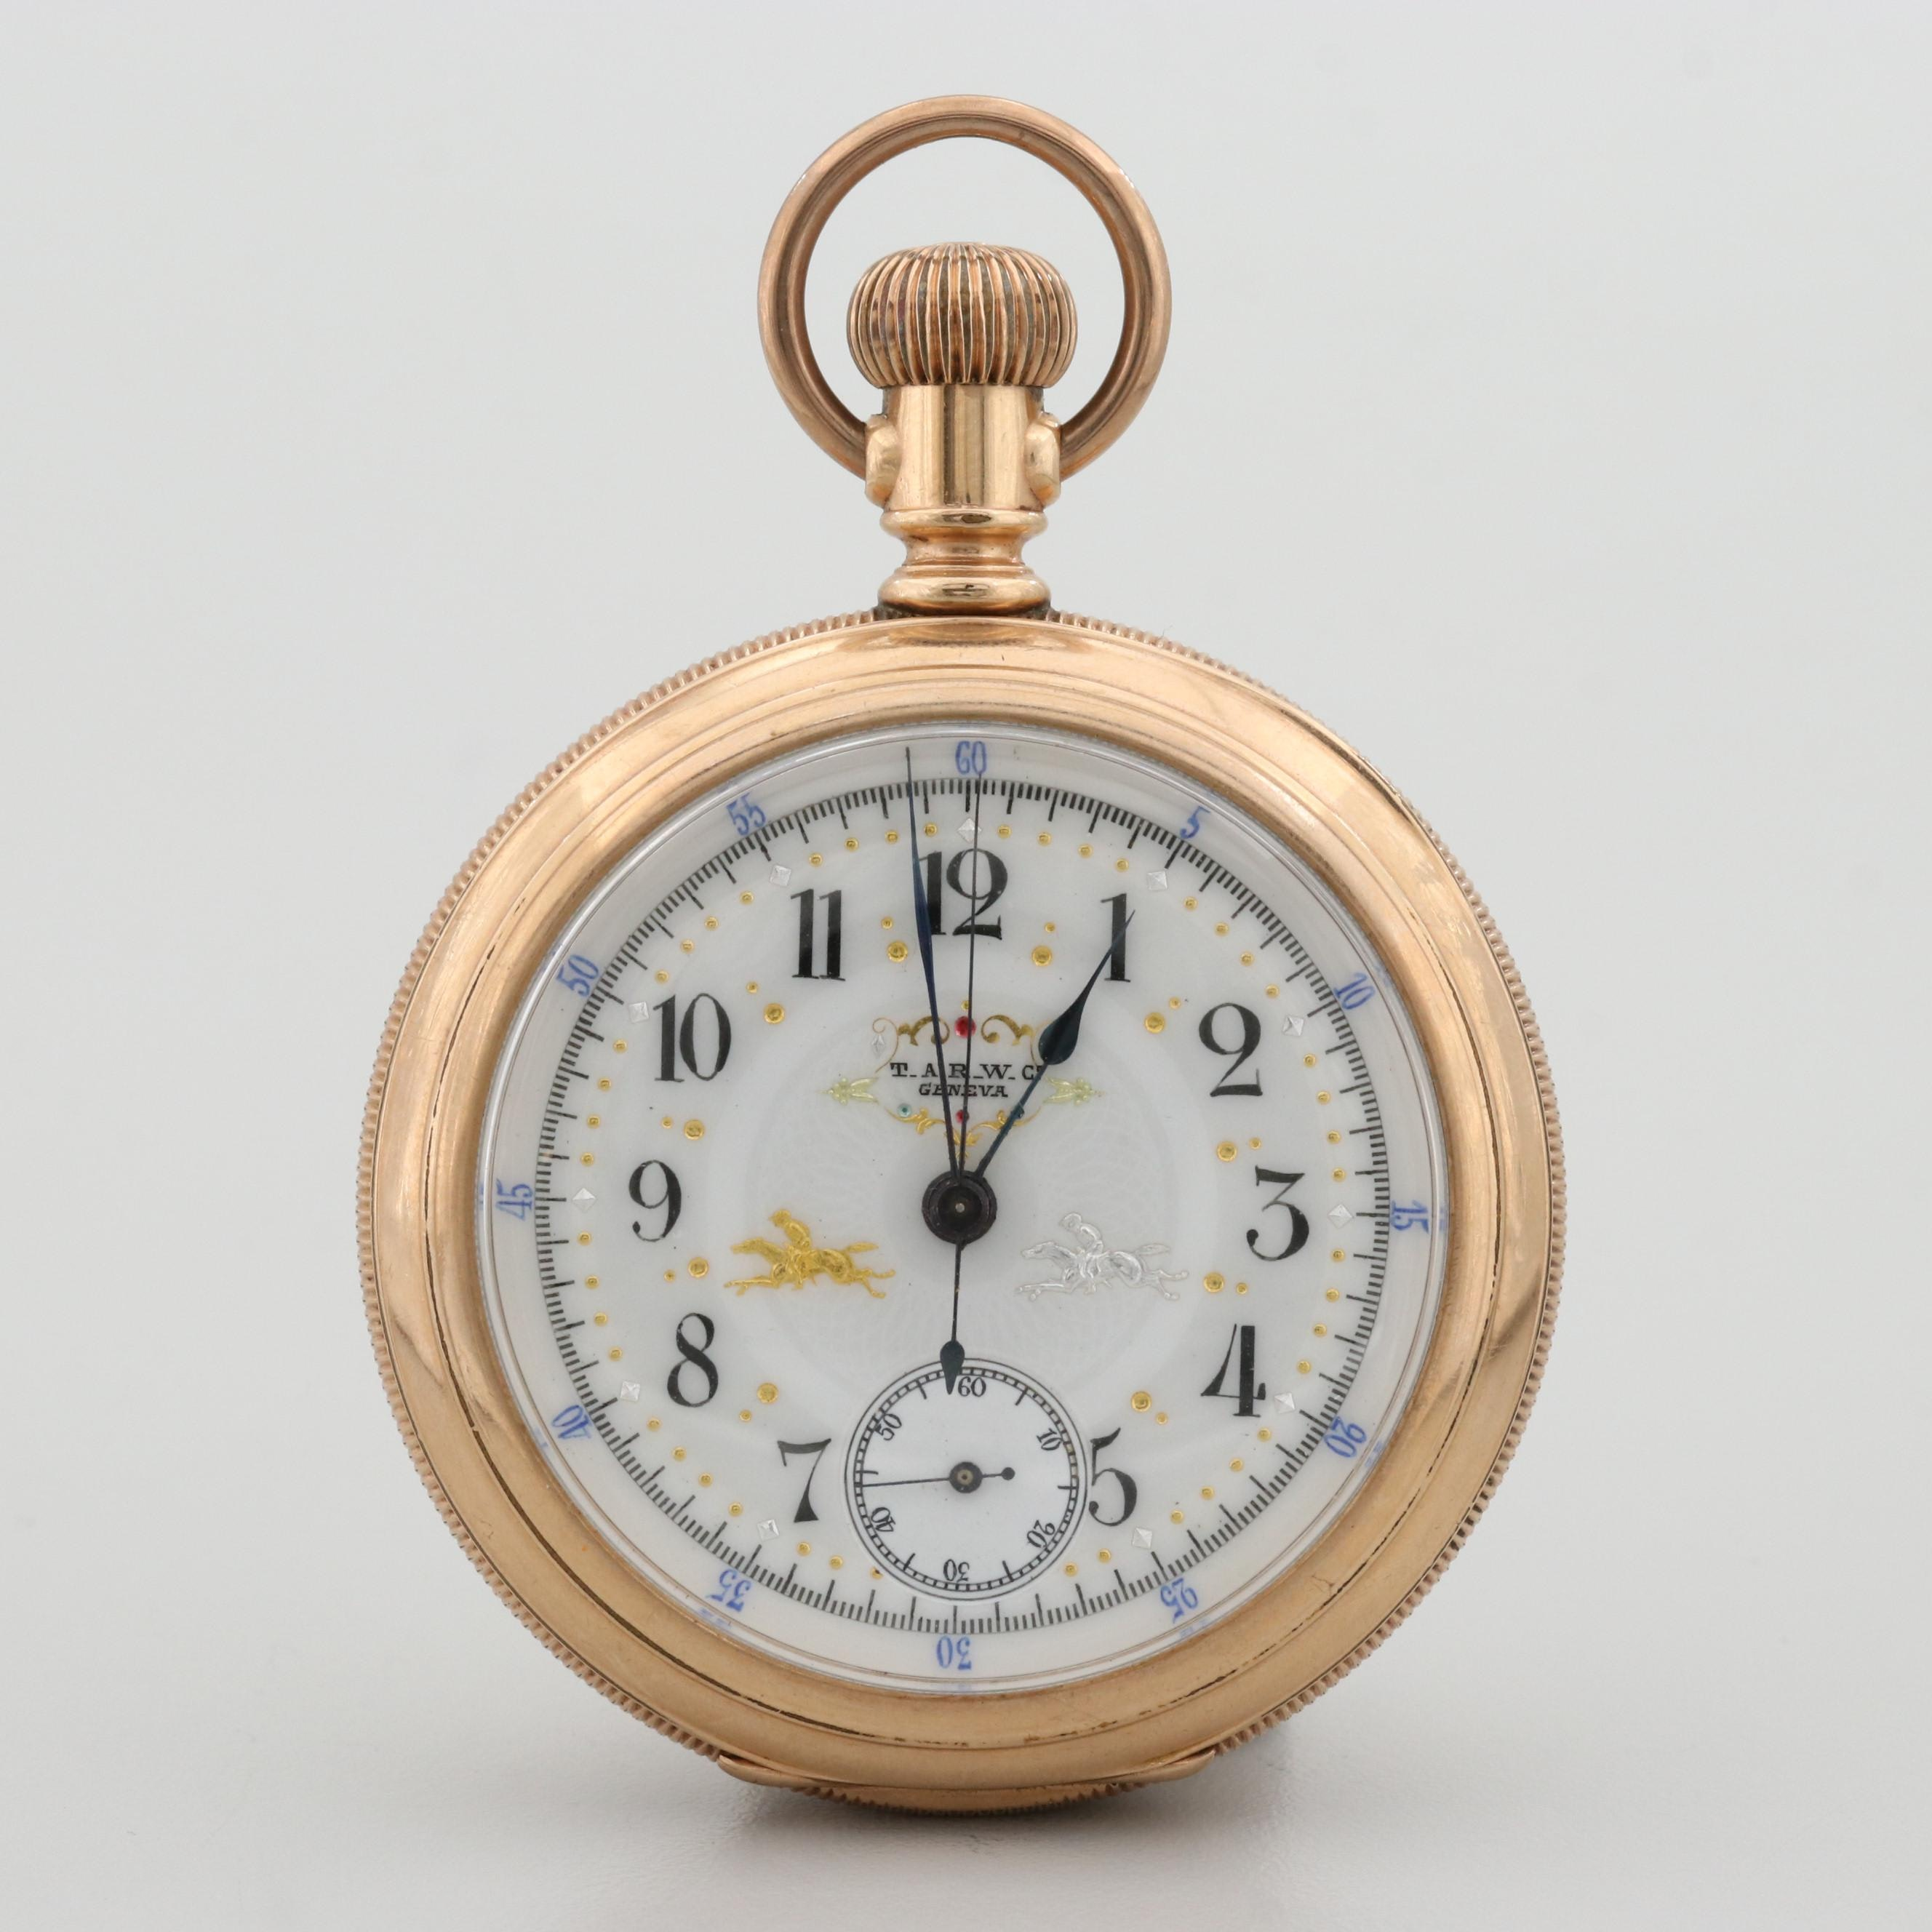 T.A.R. Watch Co. Gold Filled Chronograph Pocket Watch